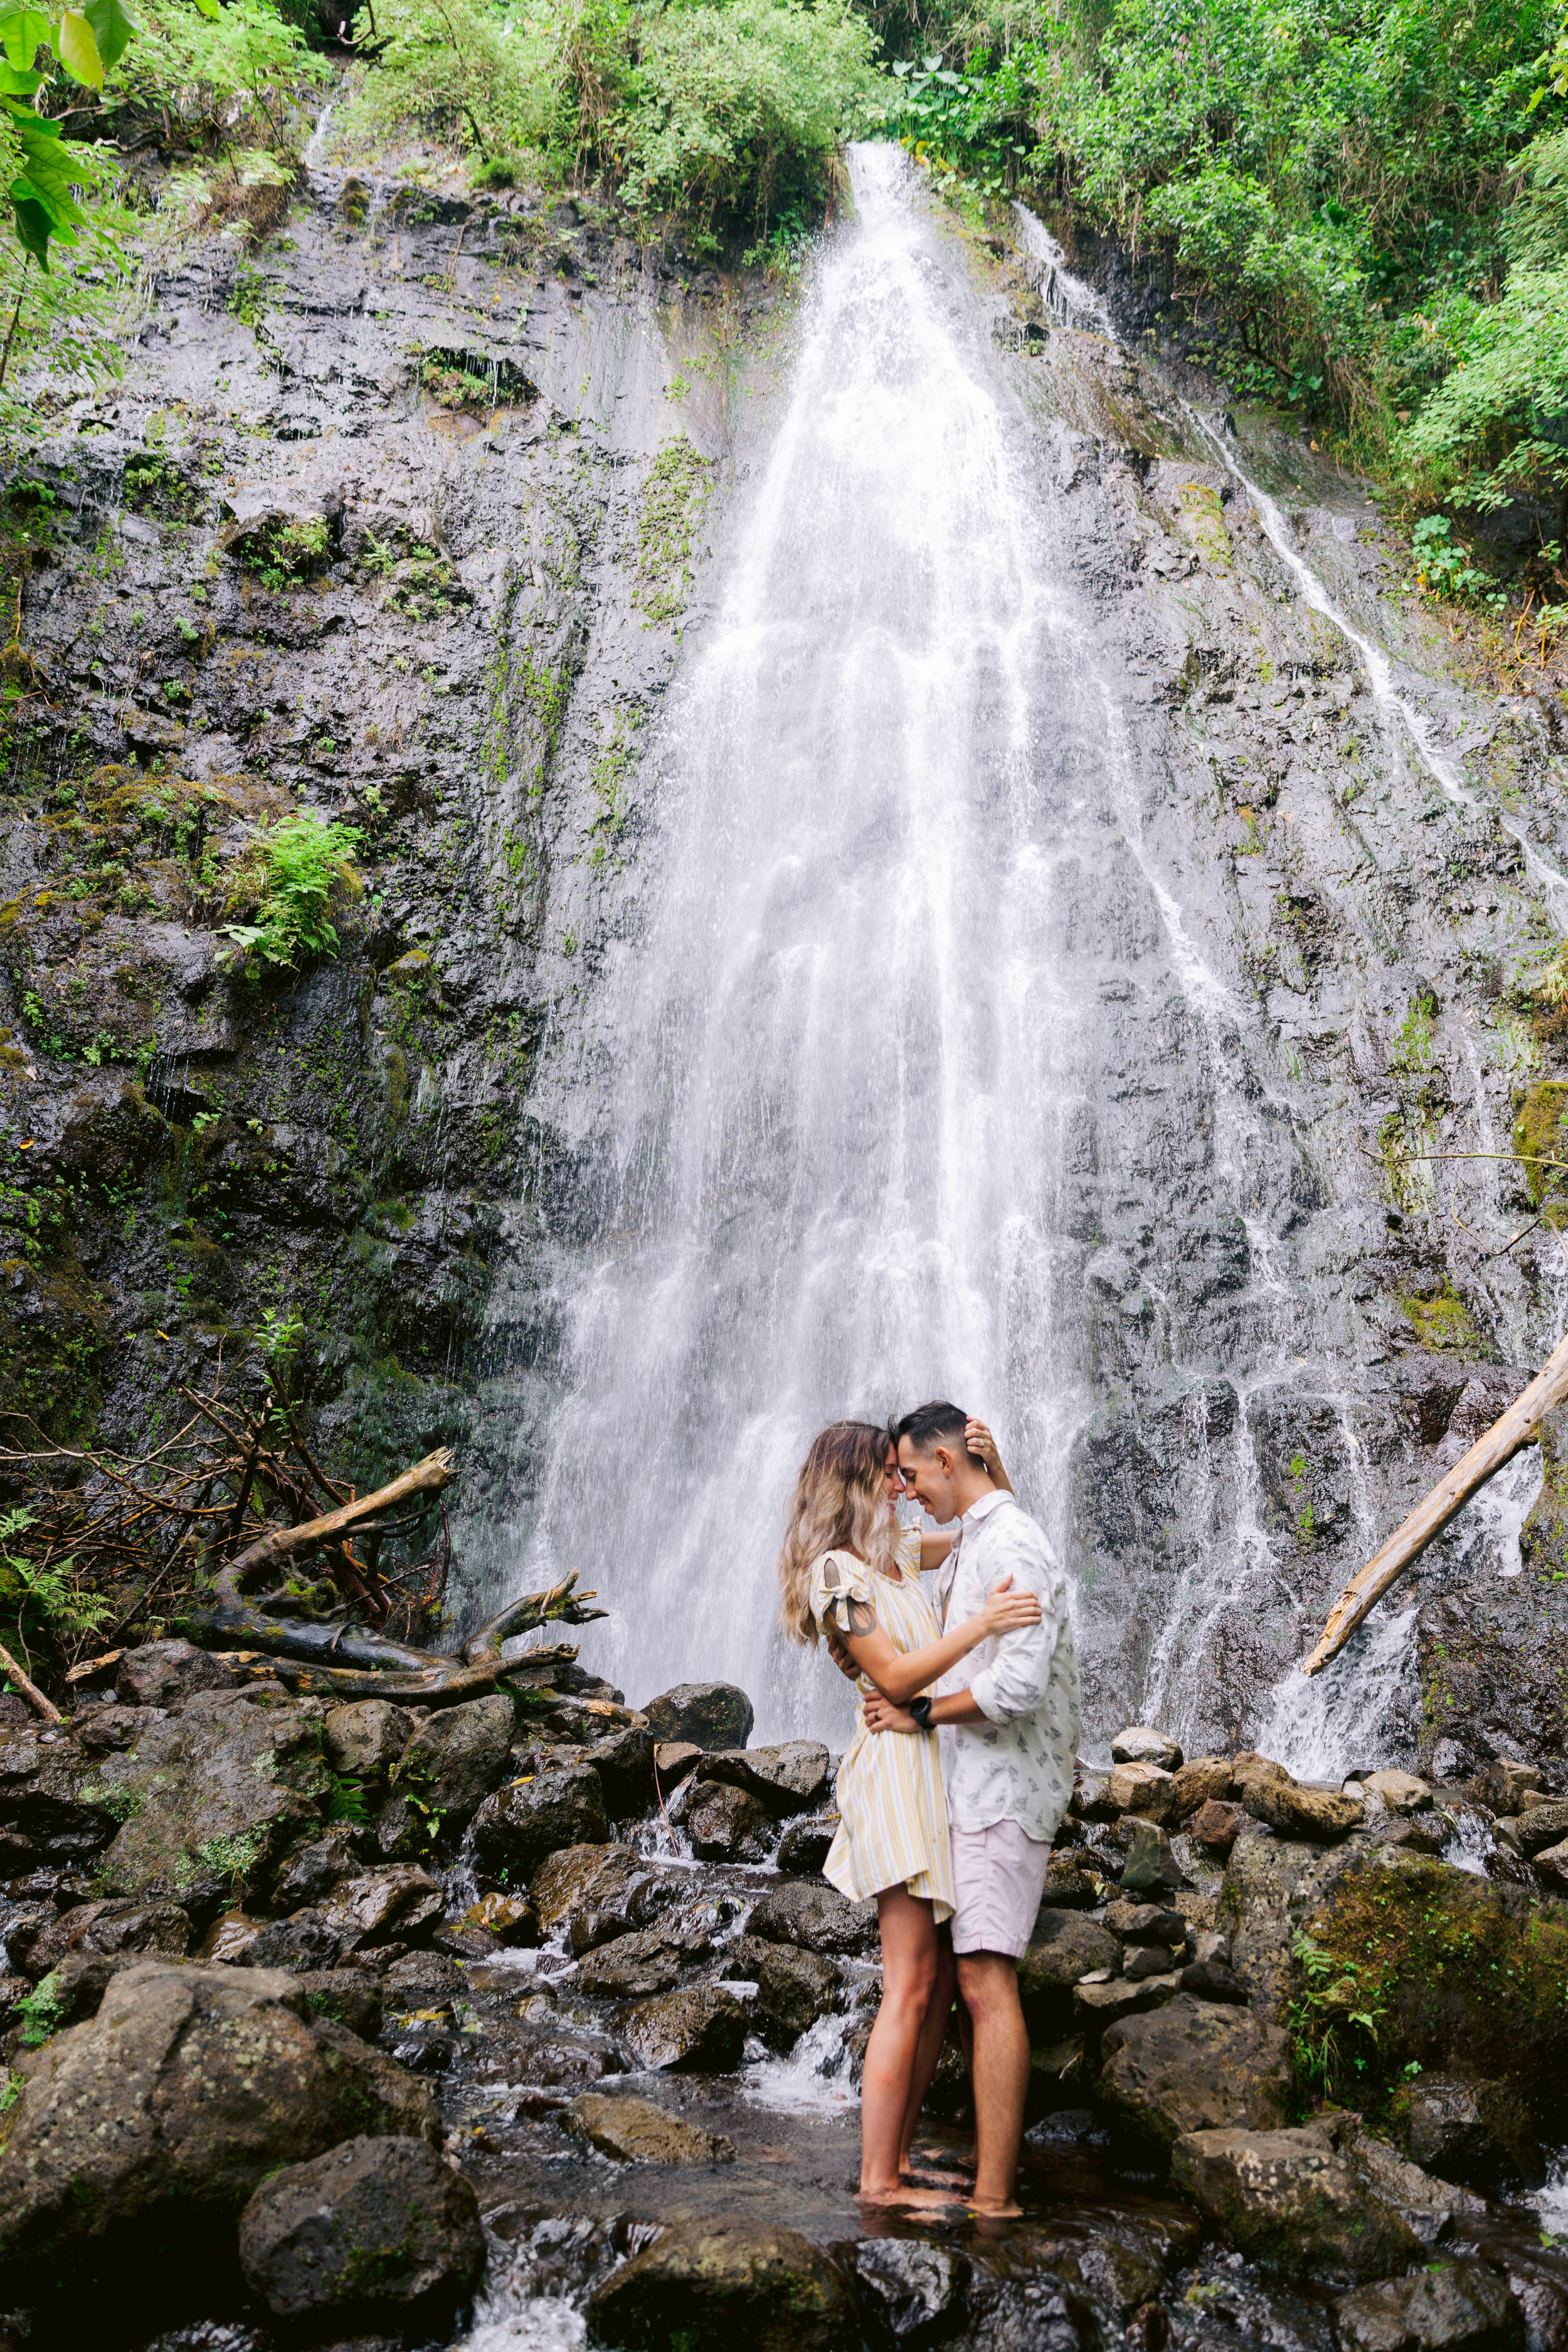 Engagement Session at a Waterfall - Oahu Hawaii Wedding Photographer